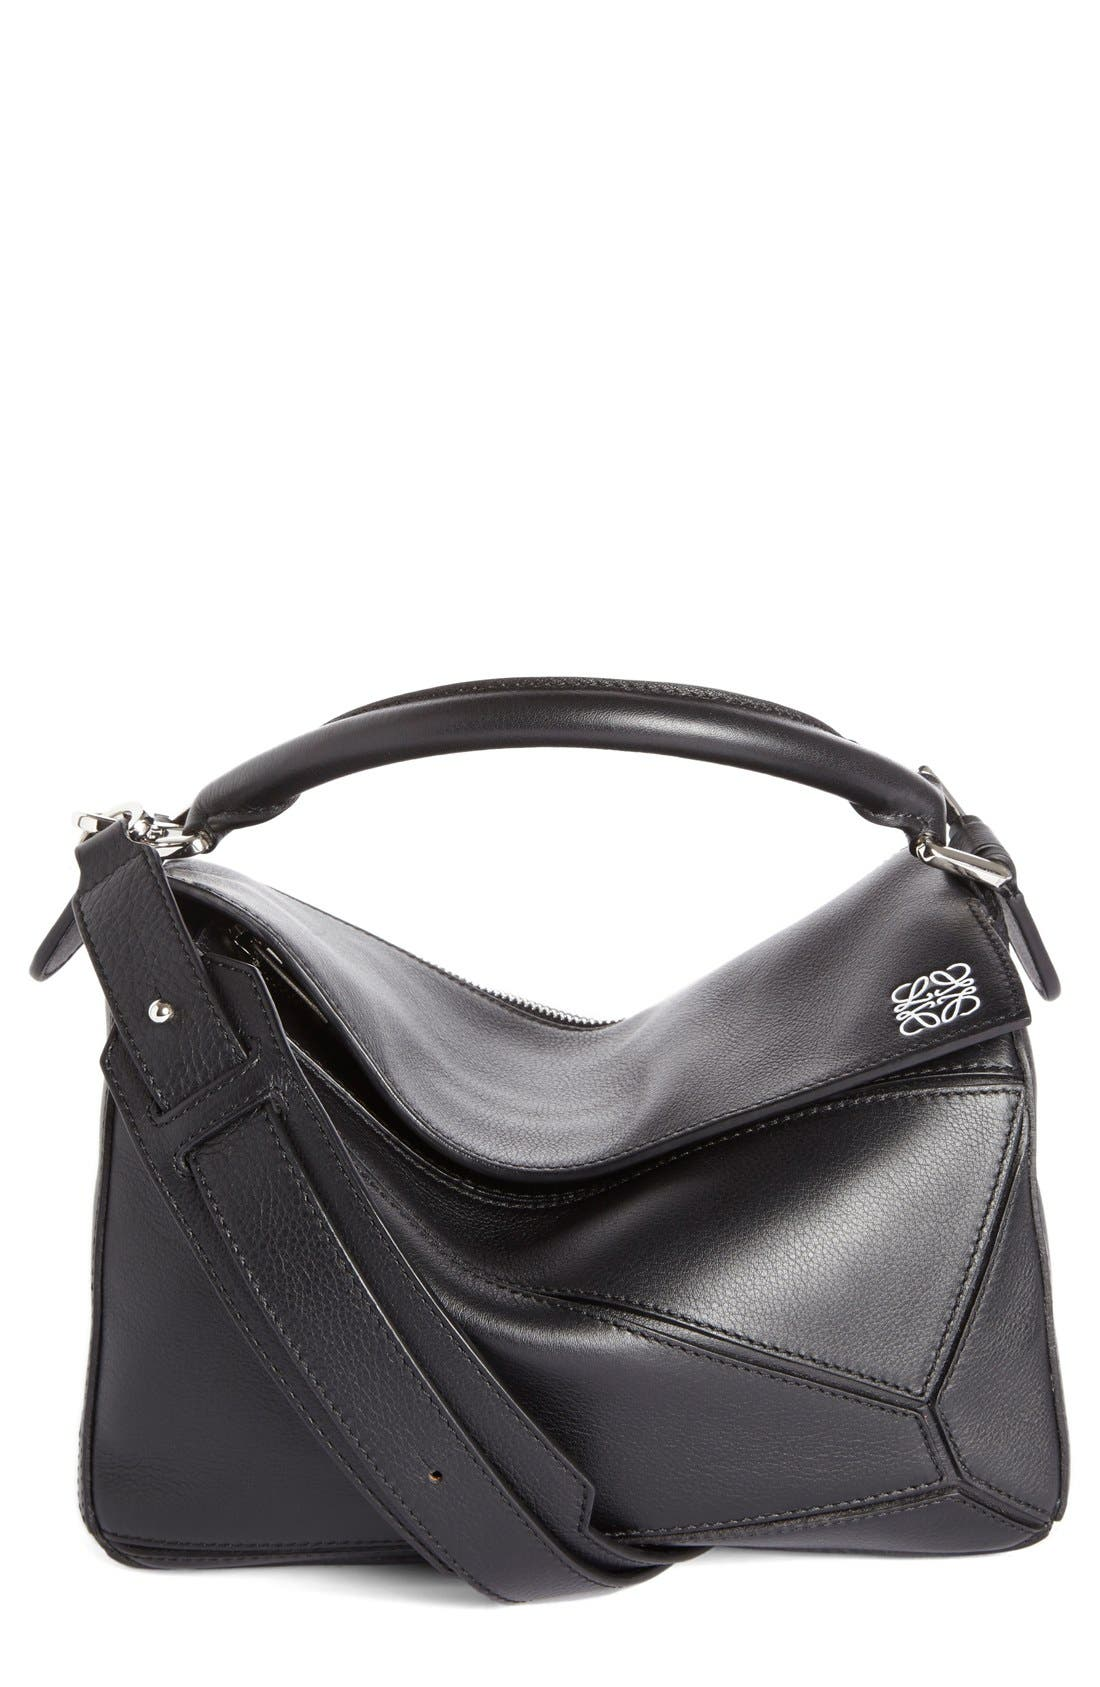 'Small Puzzle' Calfskin Leather Bag,                         Main,                         color, Black